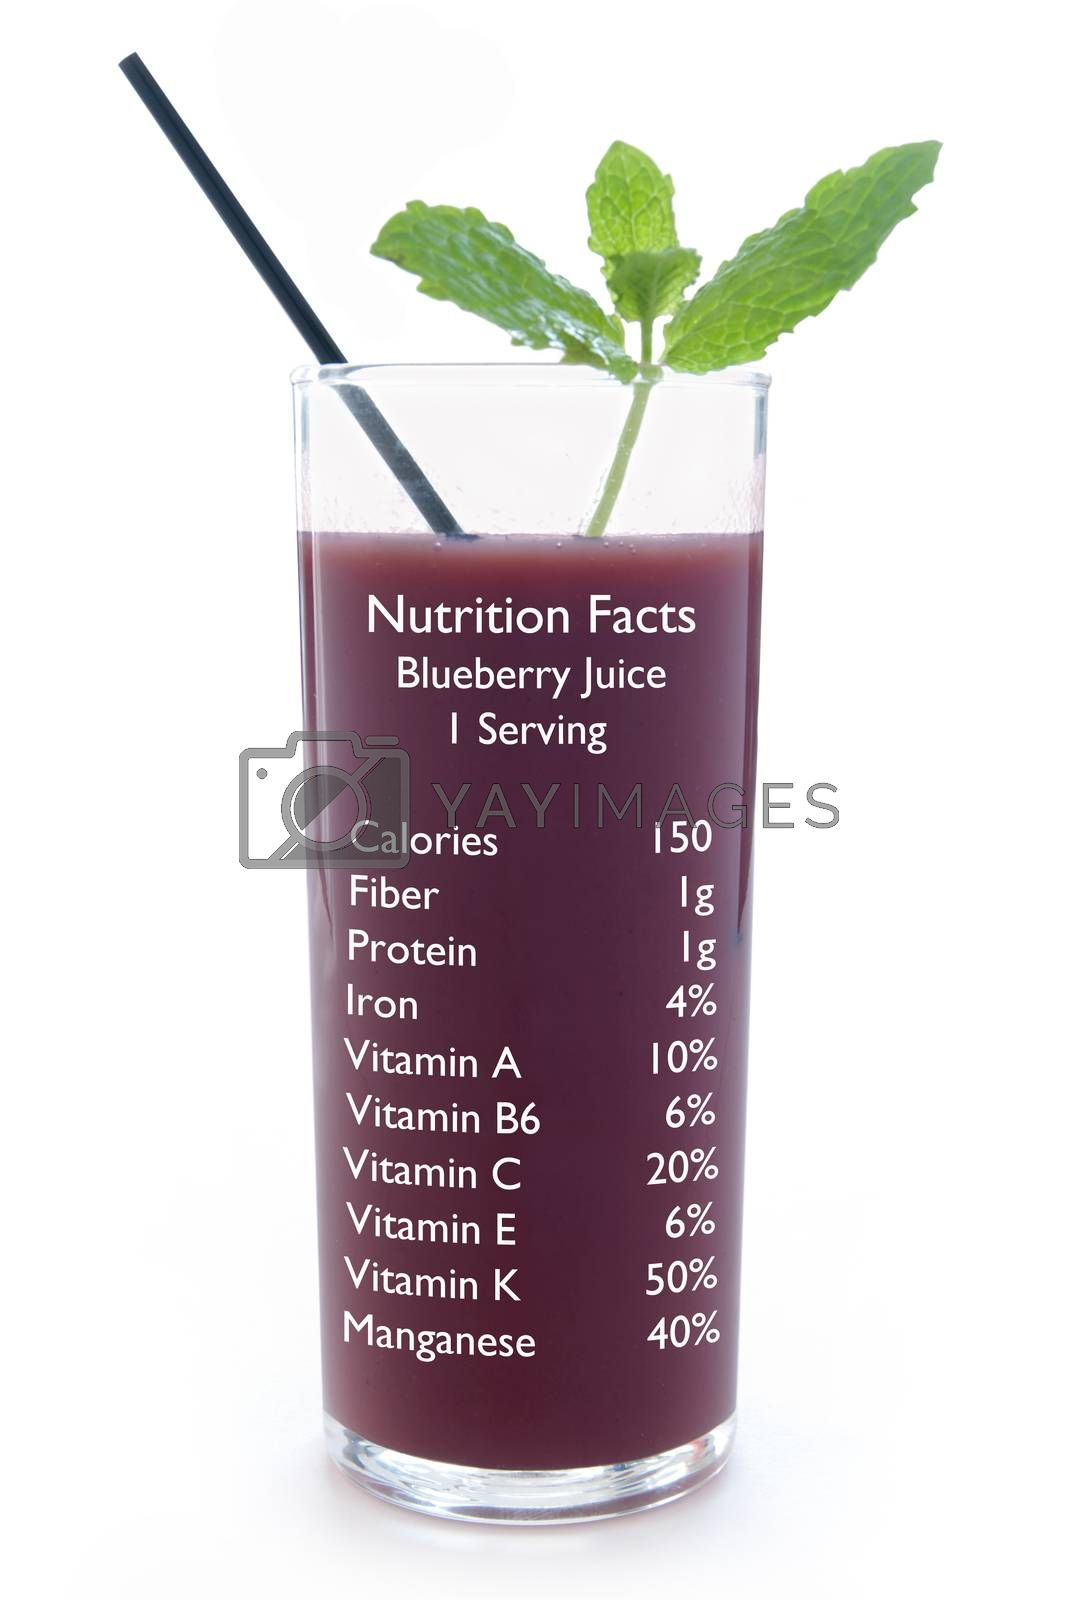 Blueberry juice nutrition facts  by unikpix